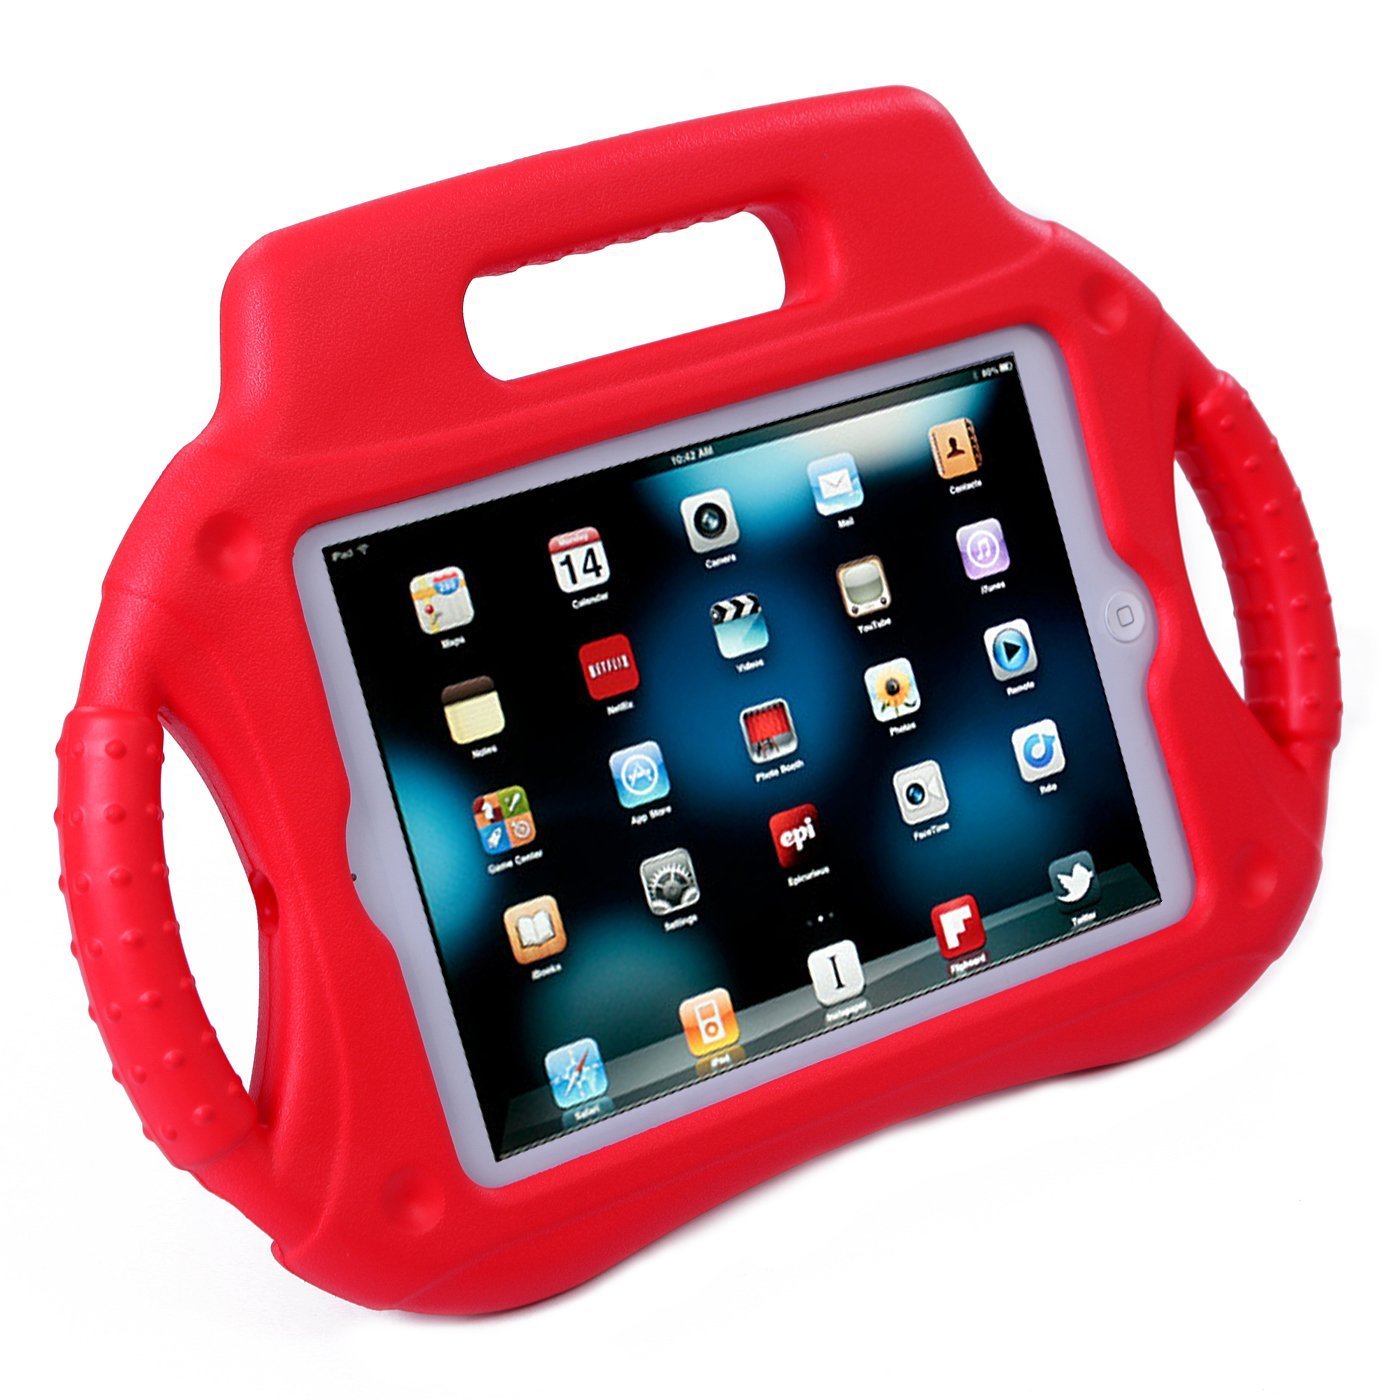 ipad cases for kids - hde steering wheel